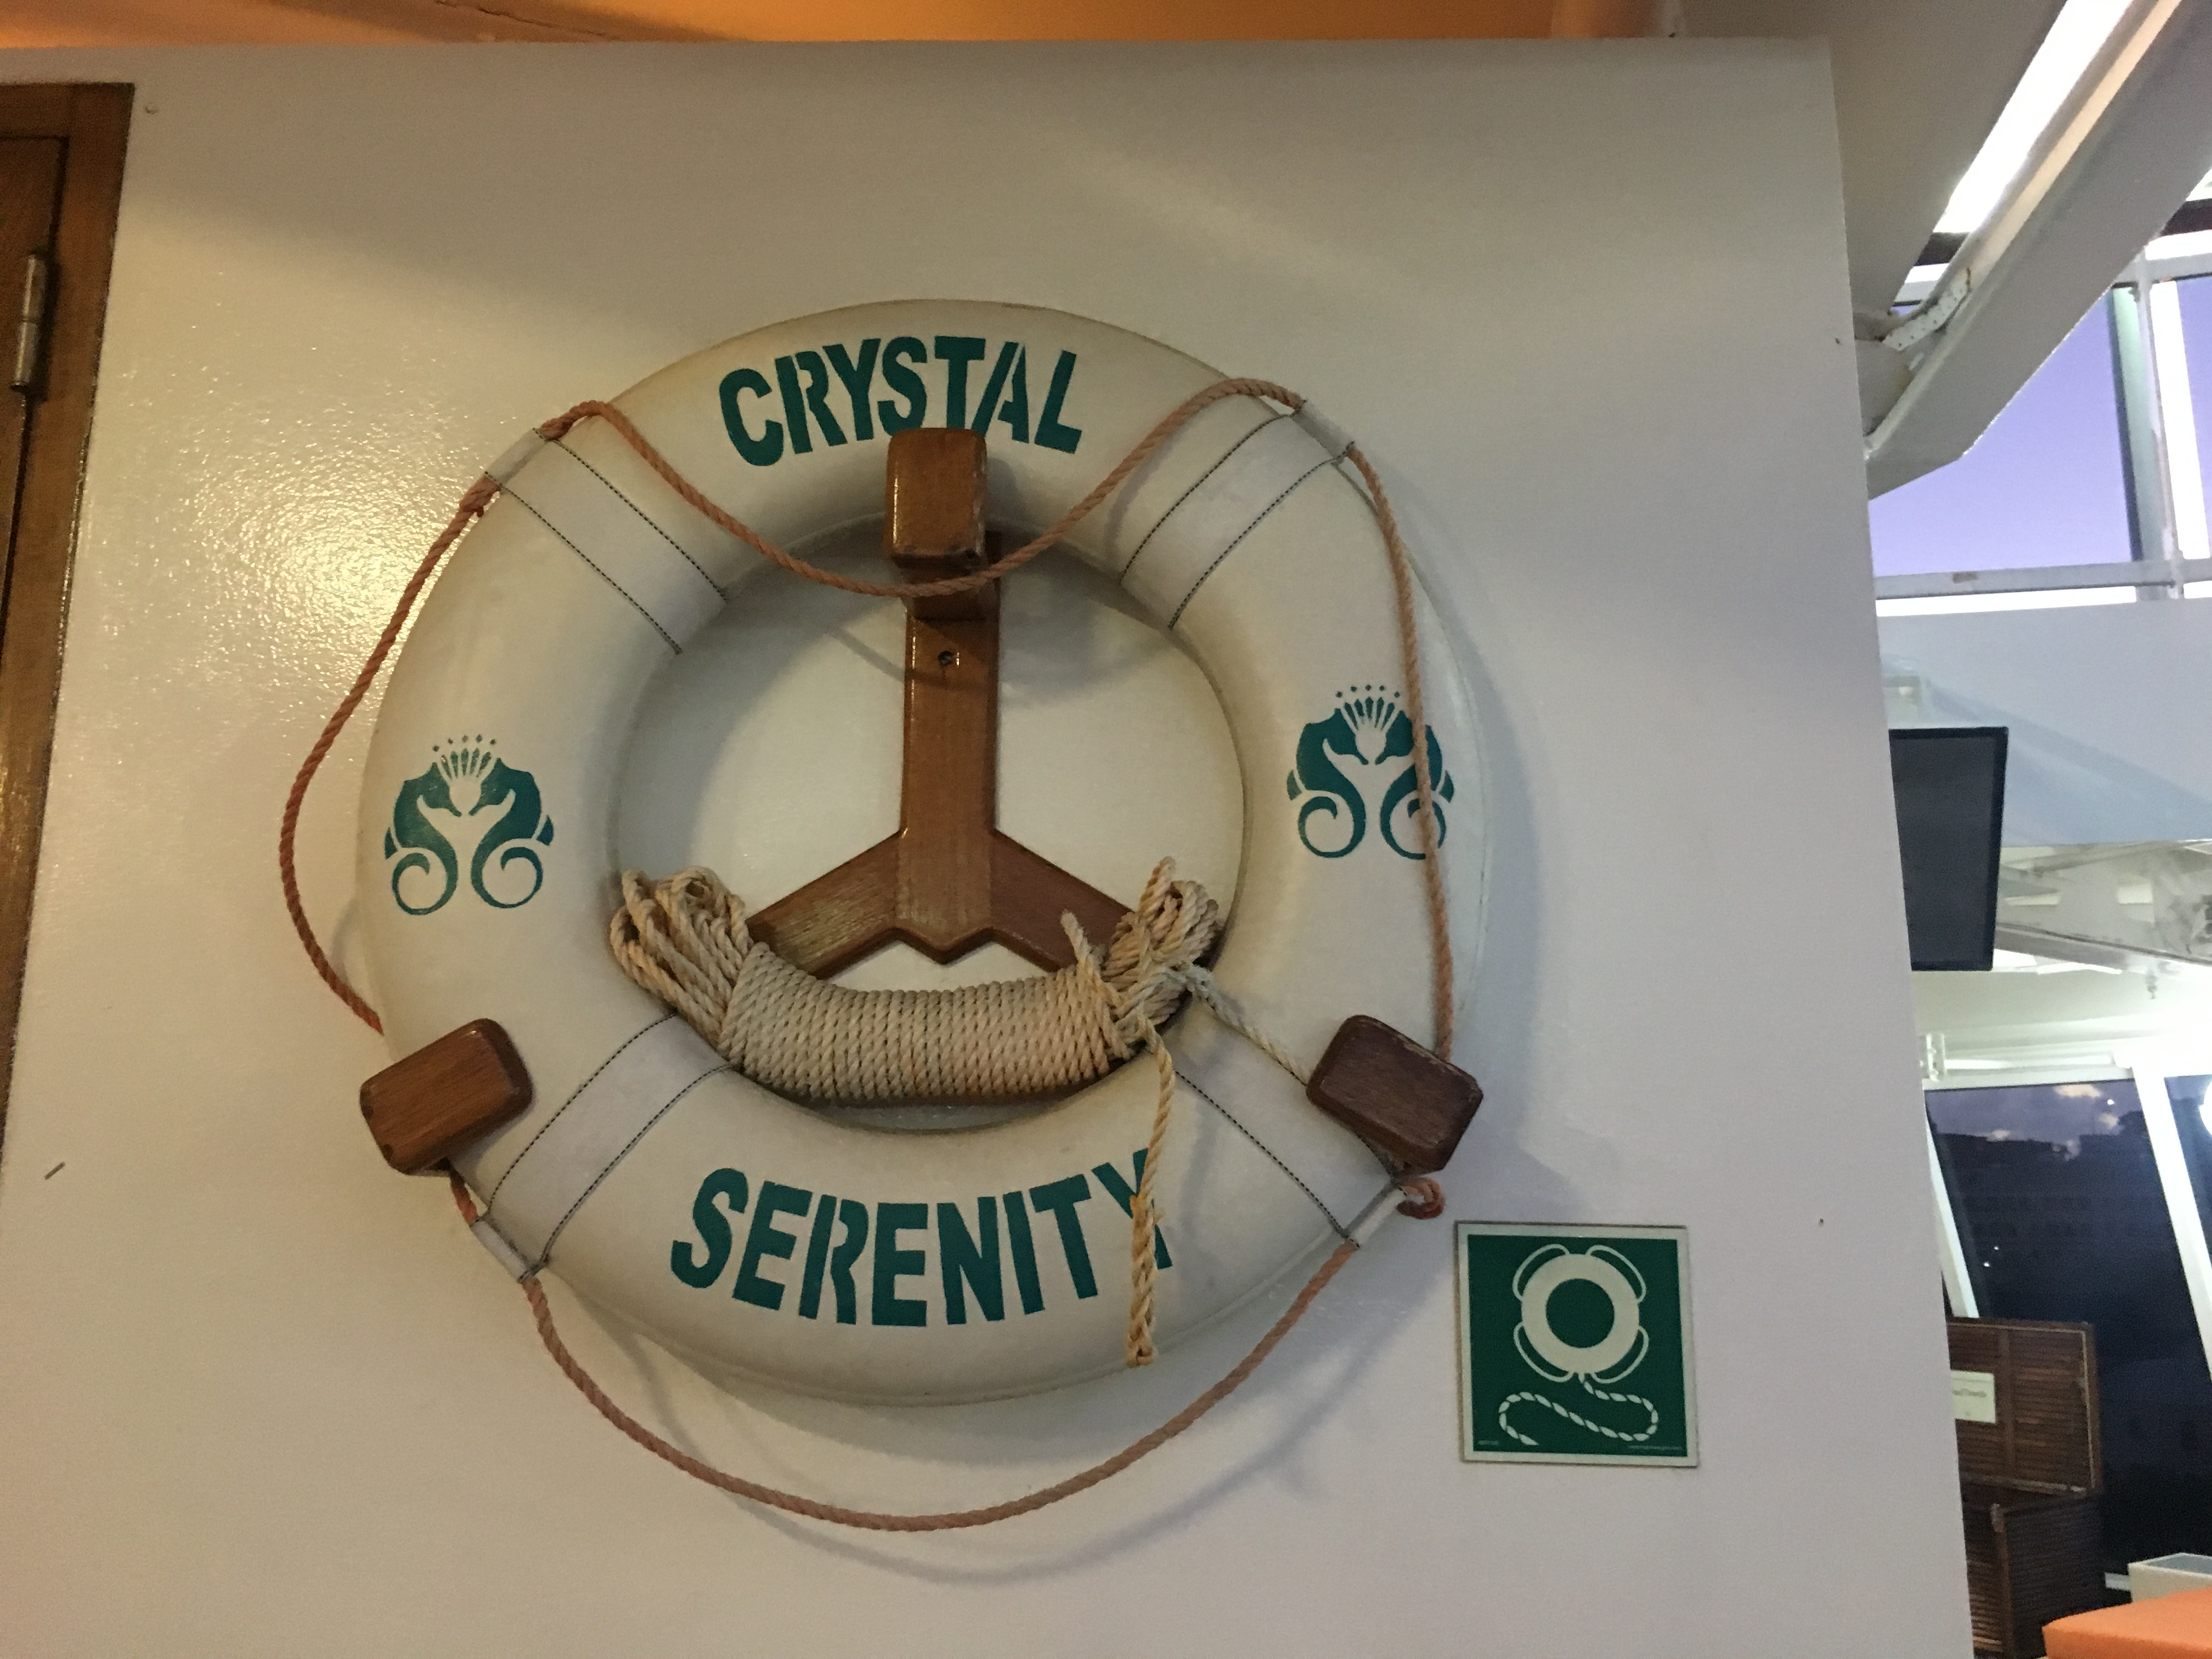 a-Crystal Serenity